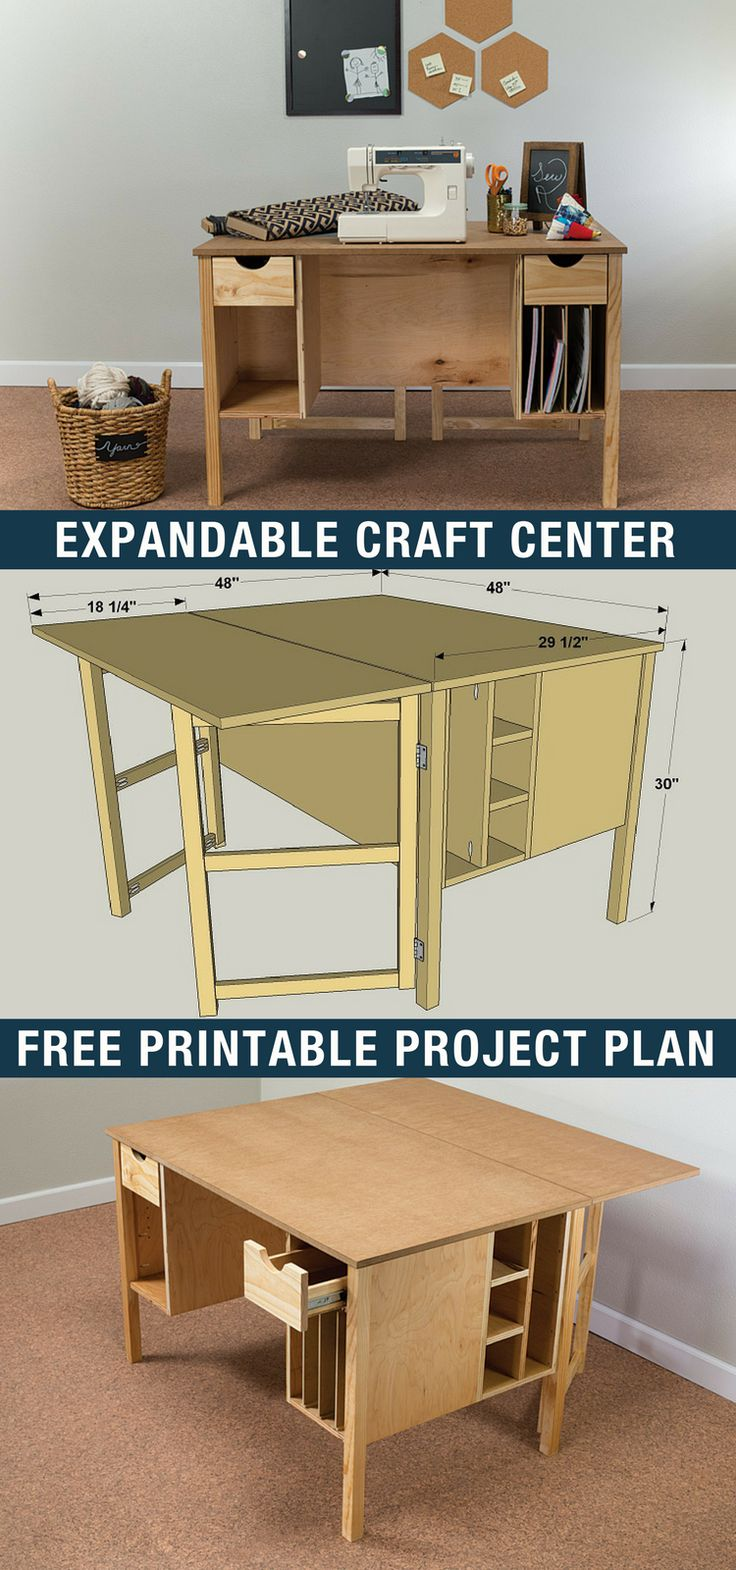 Lid german beer mug hinged lid gaming computer desk ideas - Diy expandable craft center free printable project plans on buildsomething com whether you